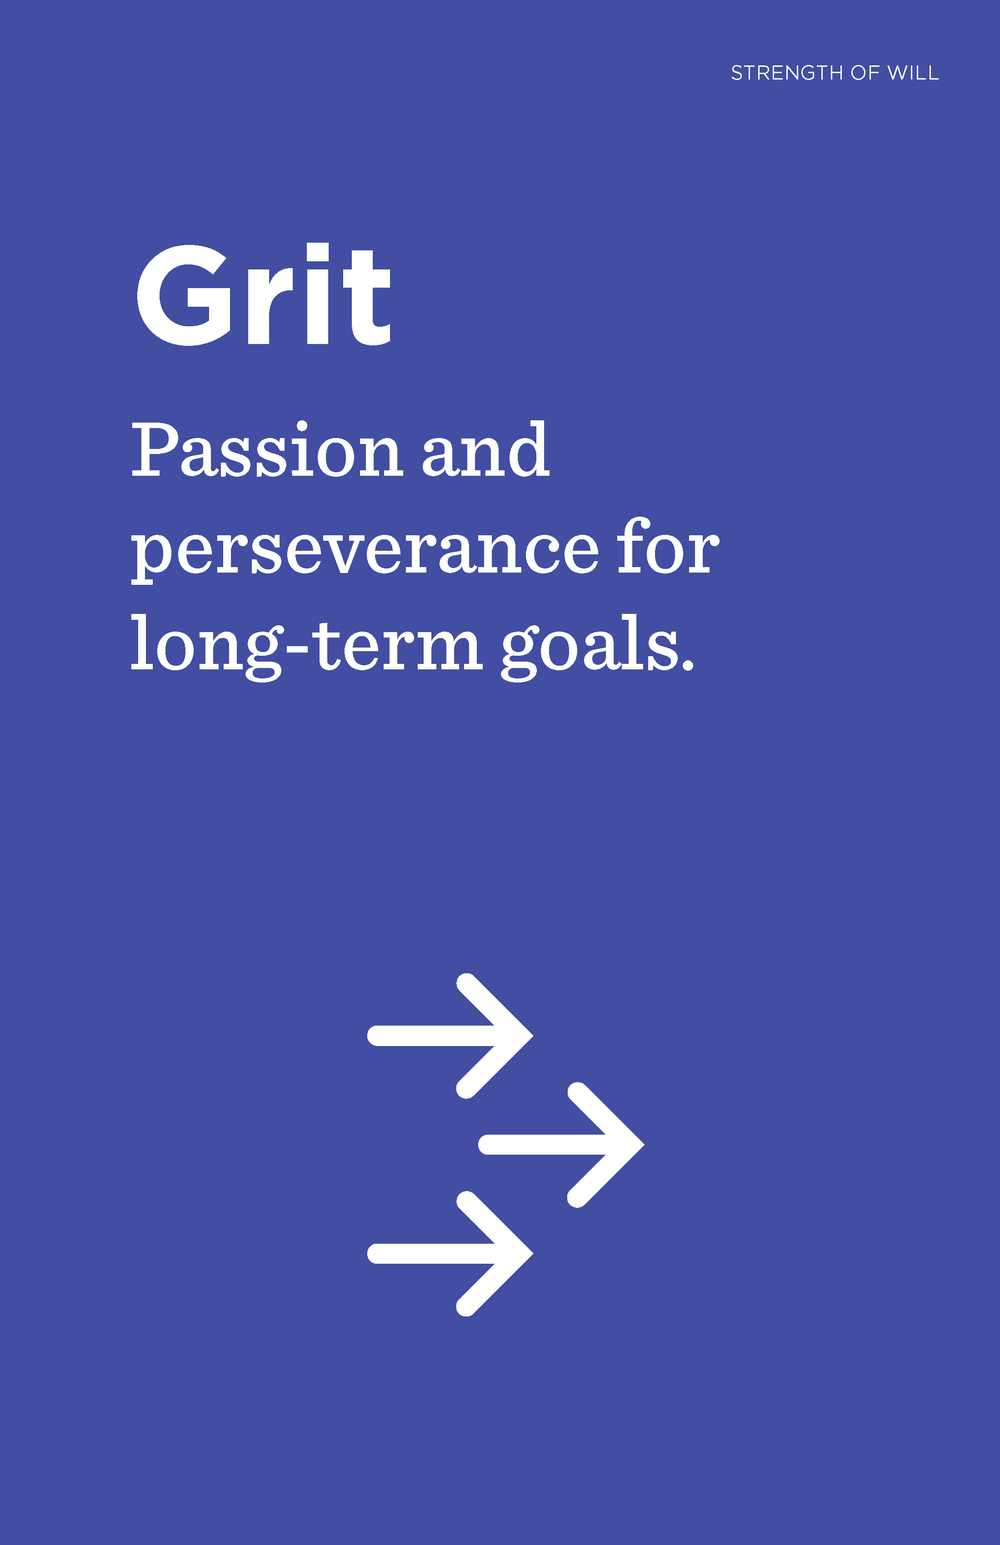 grit_posters_Page_2.png